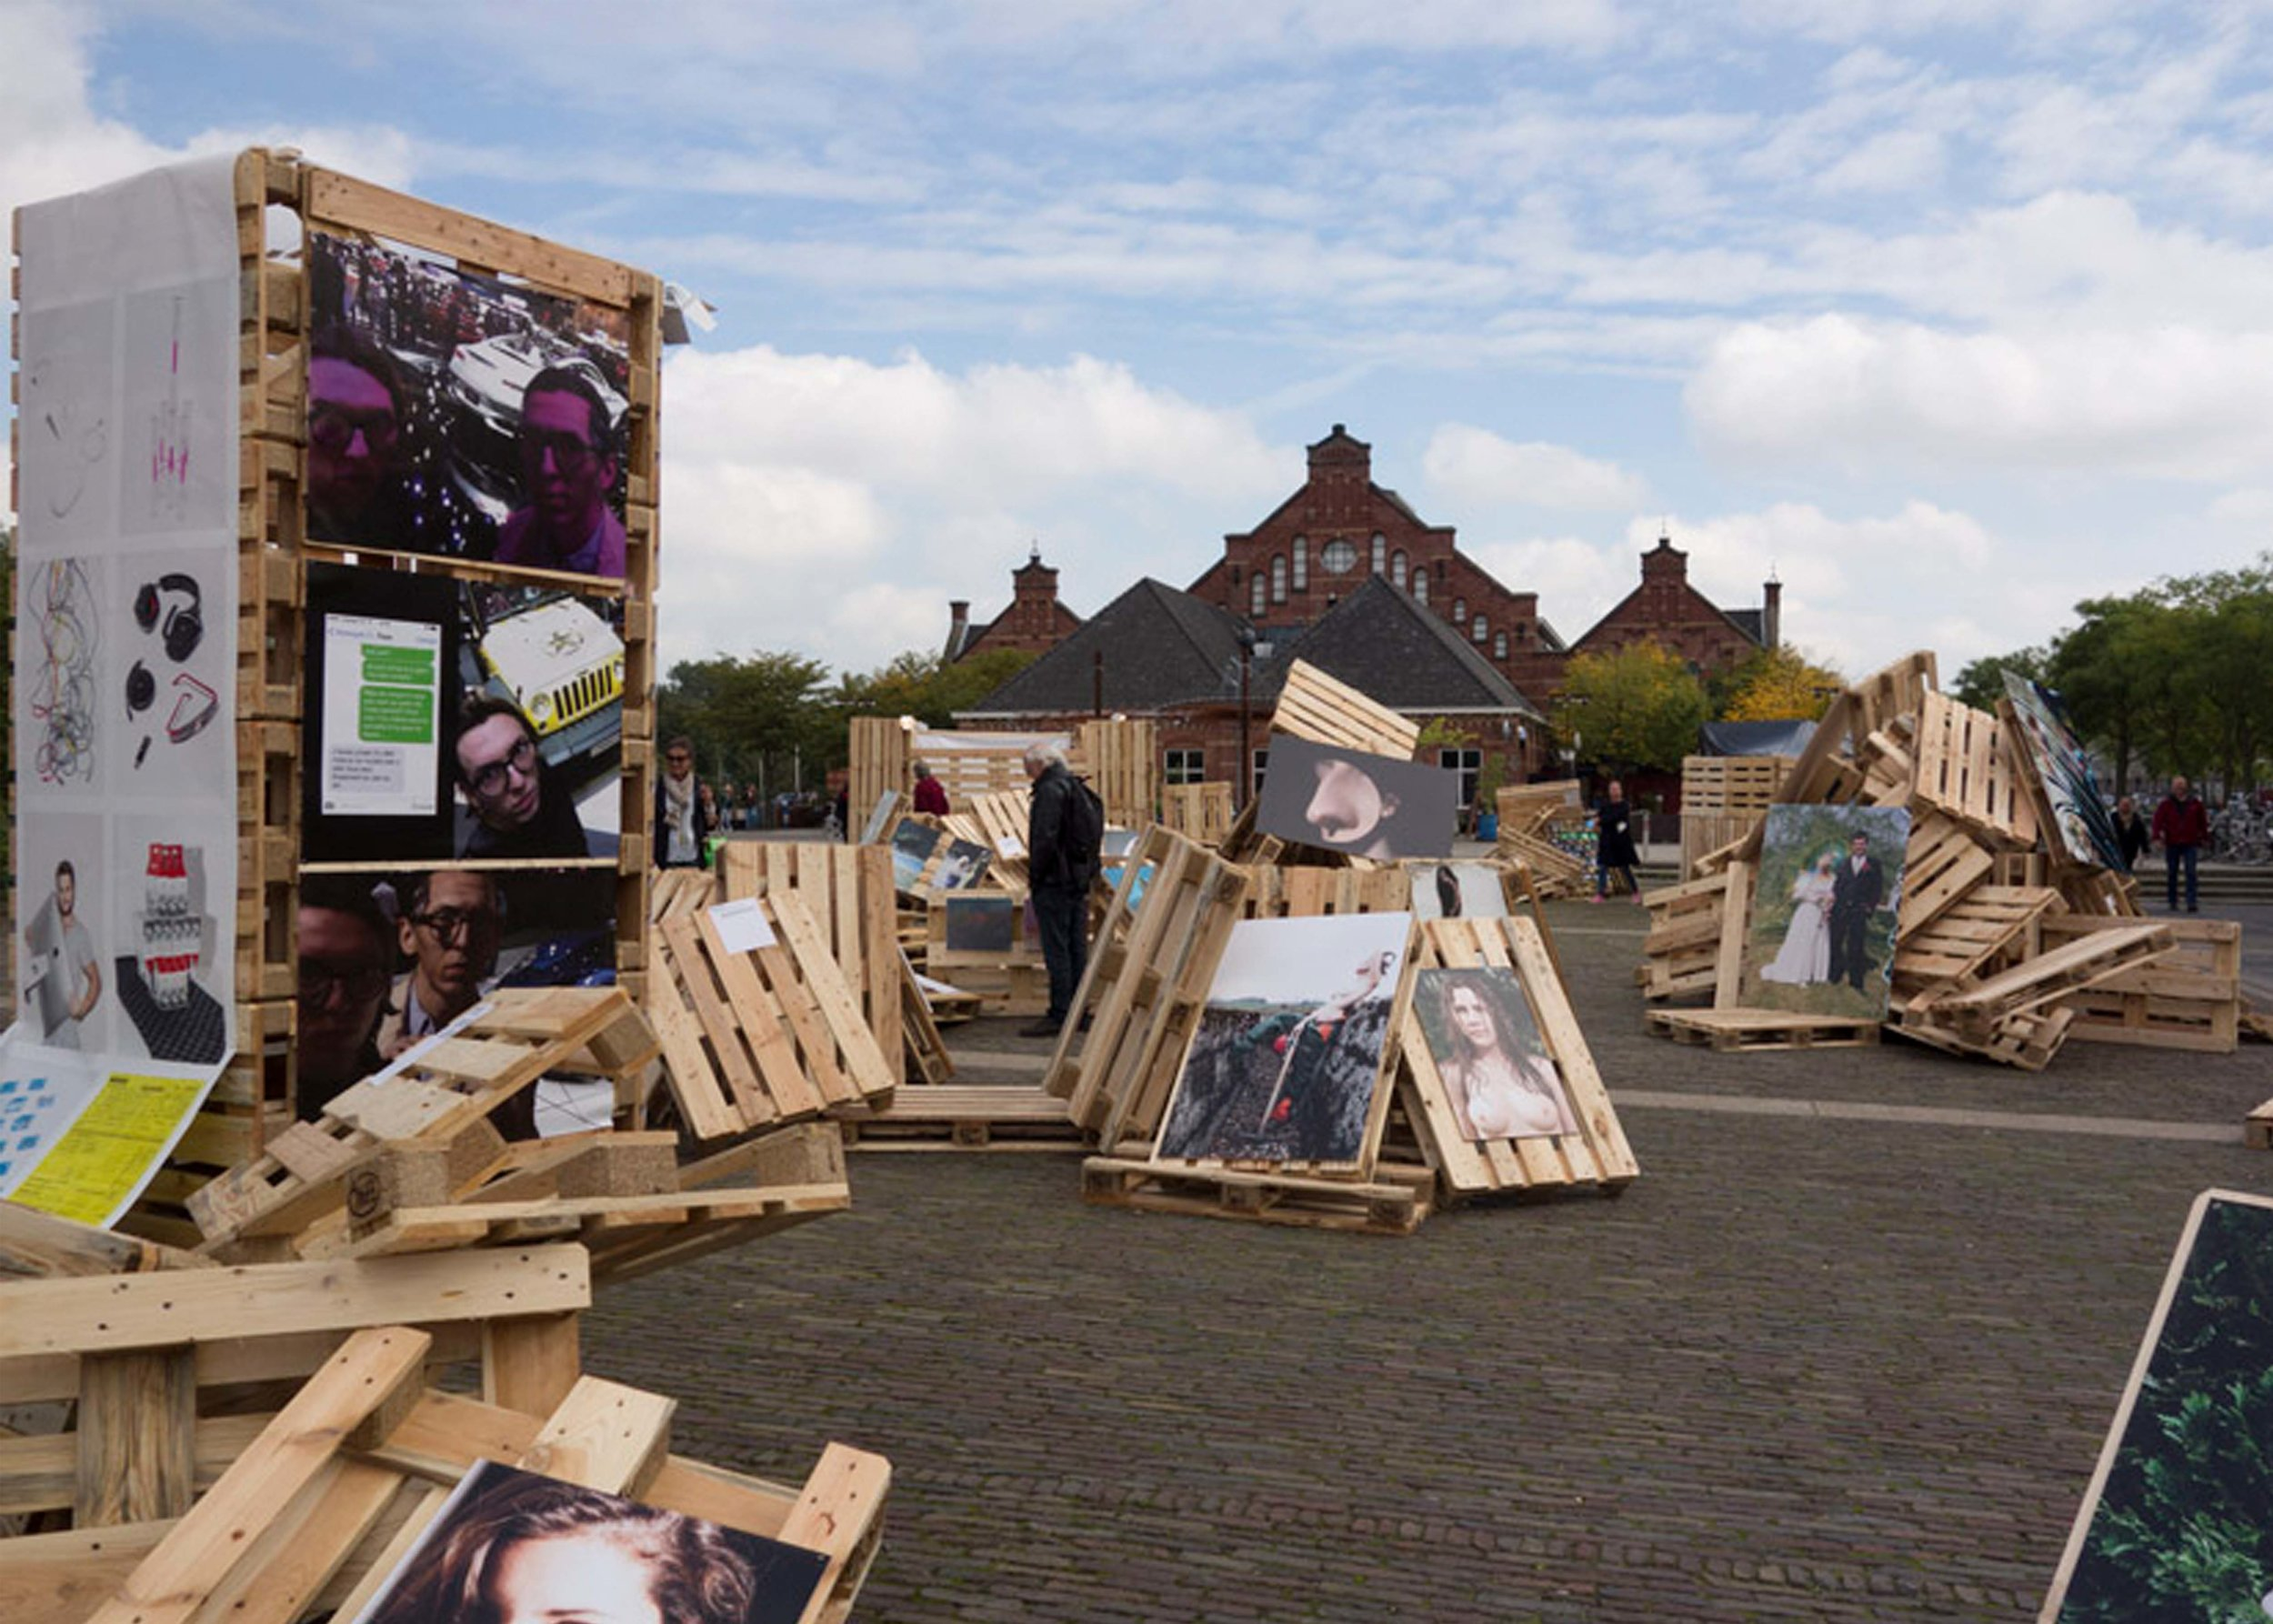 EXHIBITION - « the embarrassment show » with Erik Kessel, Unseen, Amsterdam, 2015